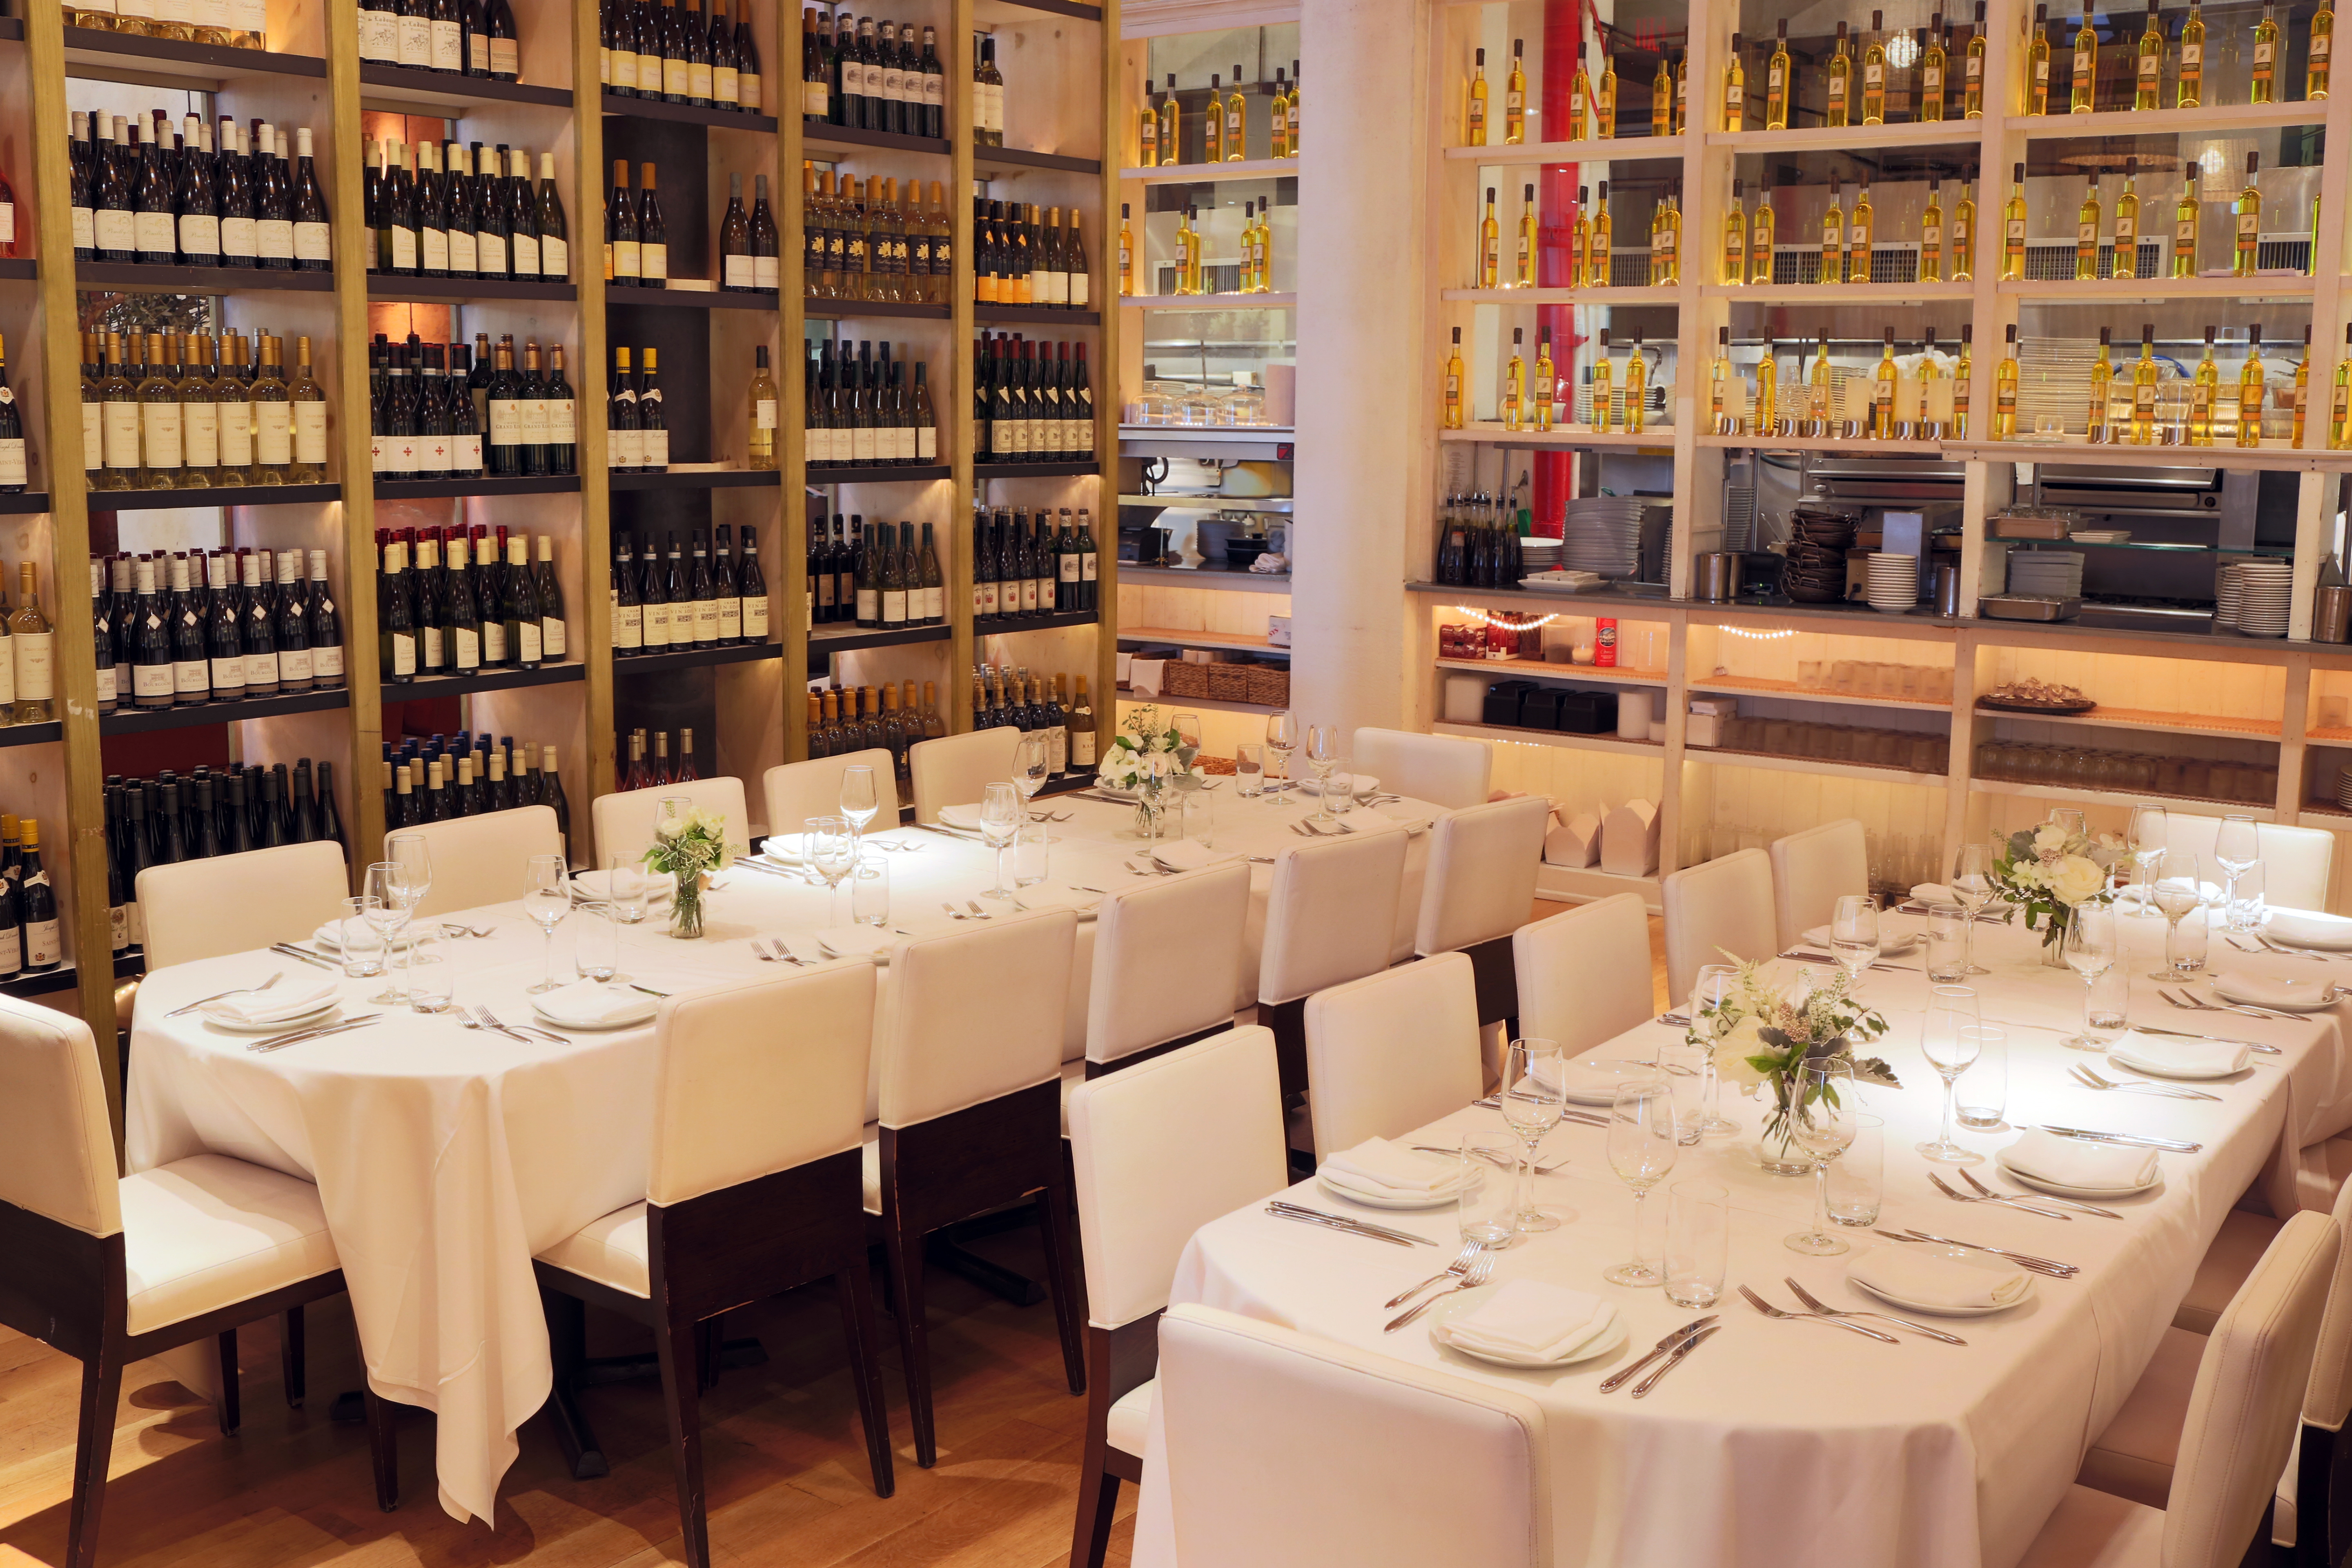 Photo #16 Wine Room at Meatpacking District Restaurant